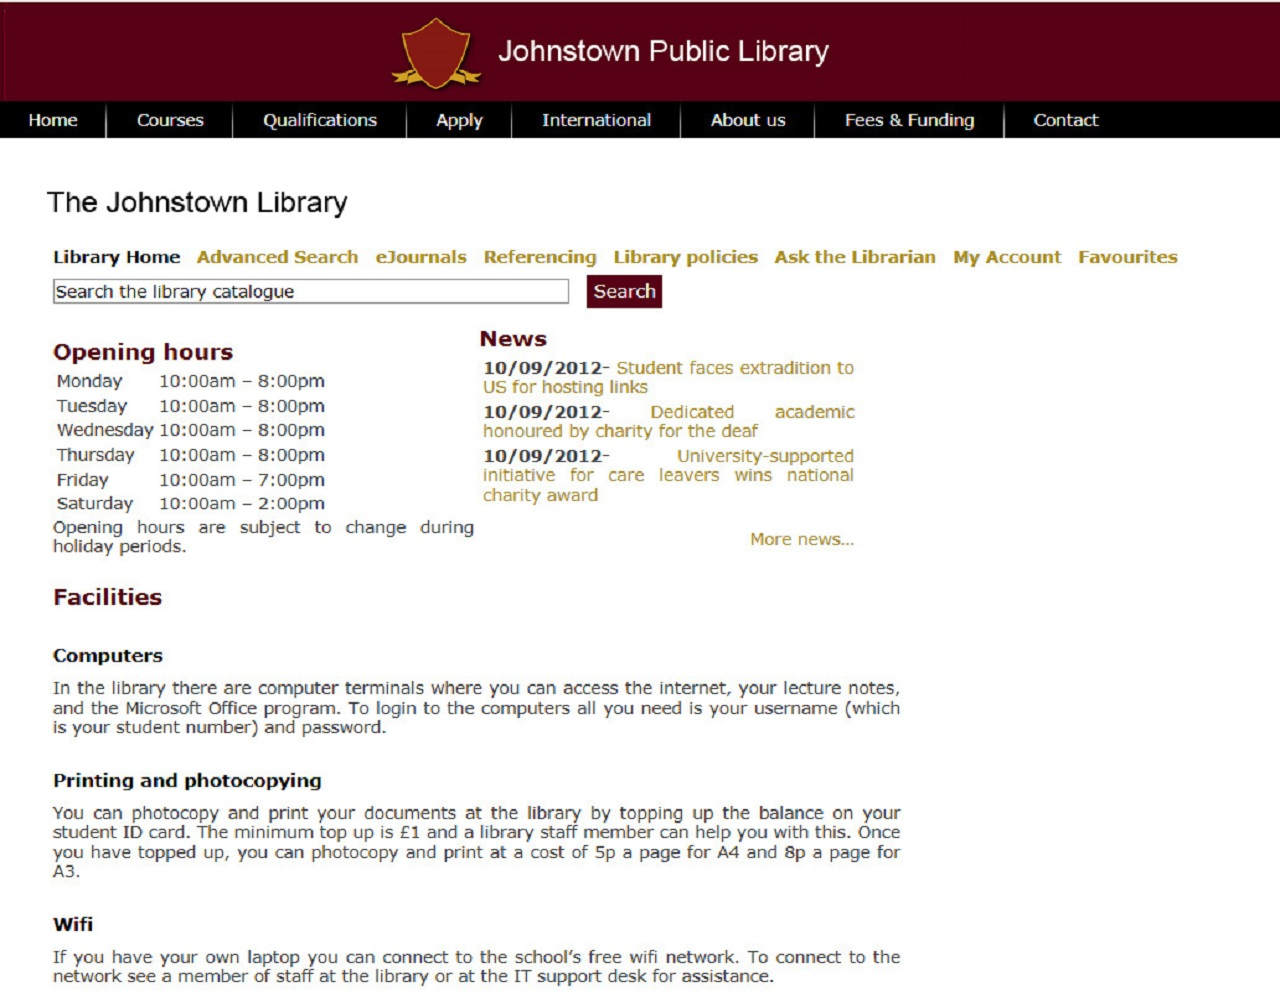 Johnstown Public Library OPAC